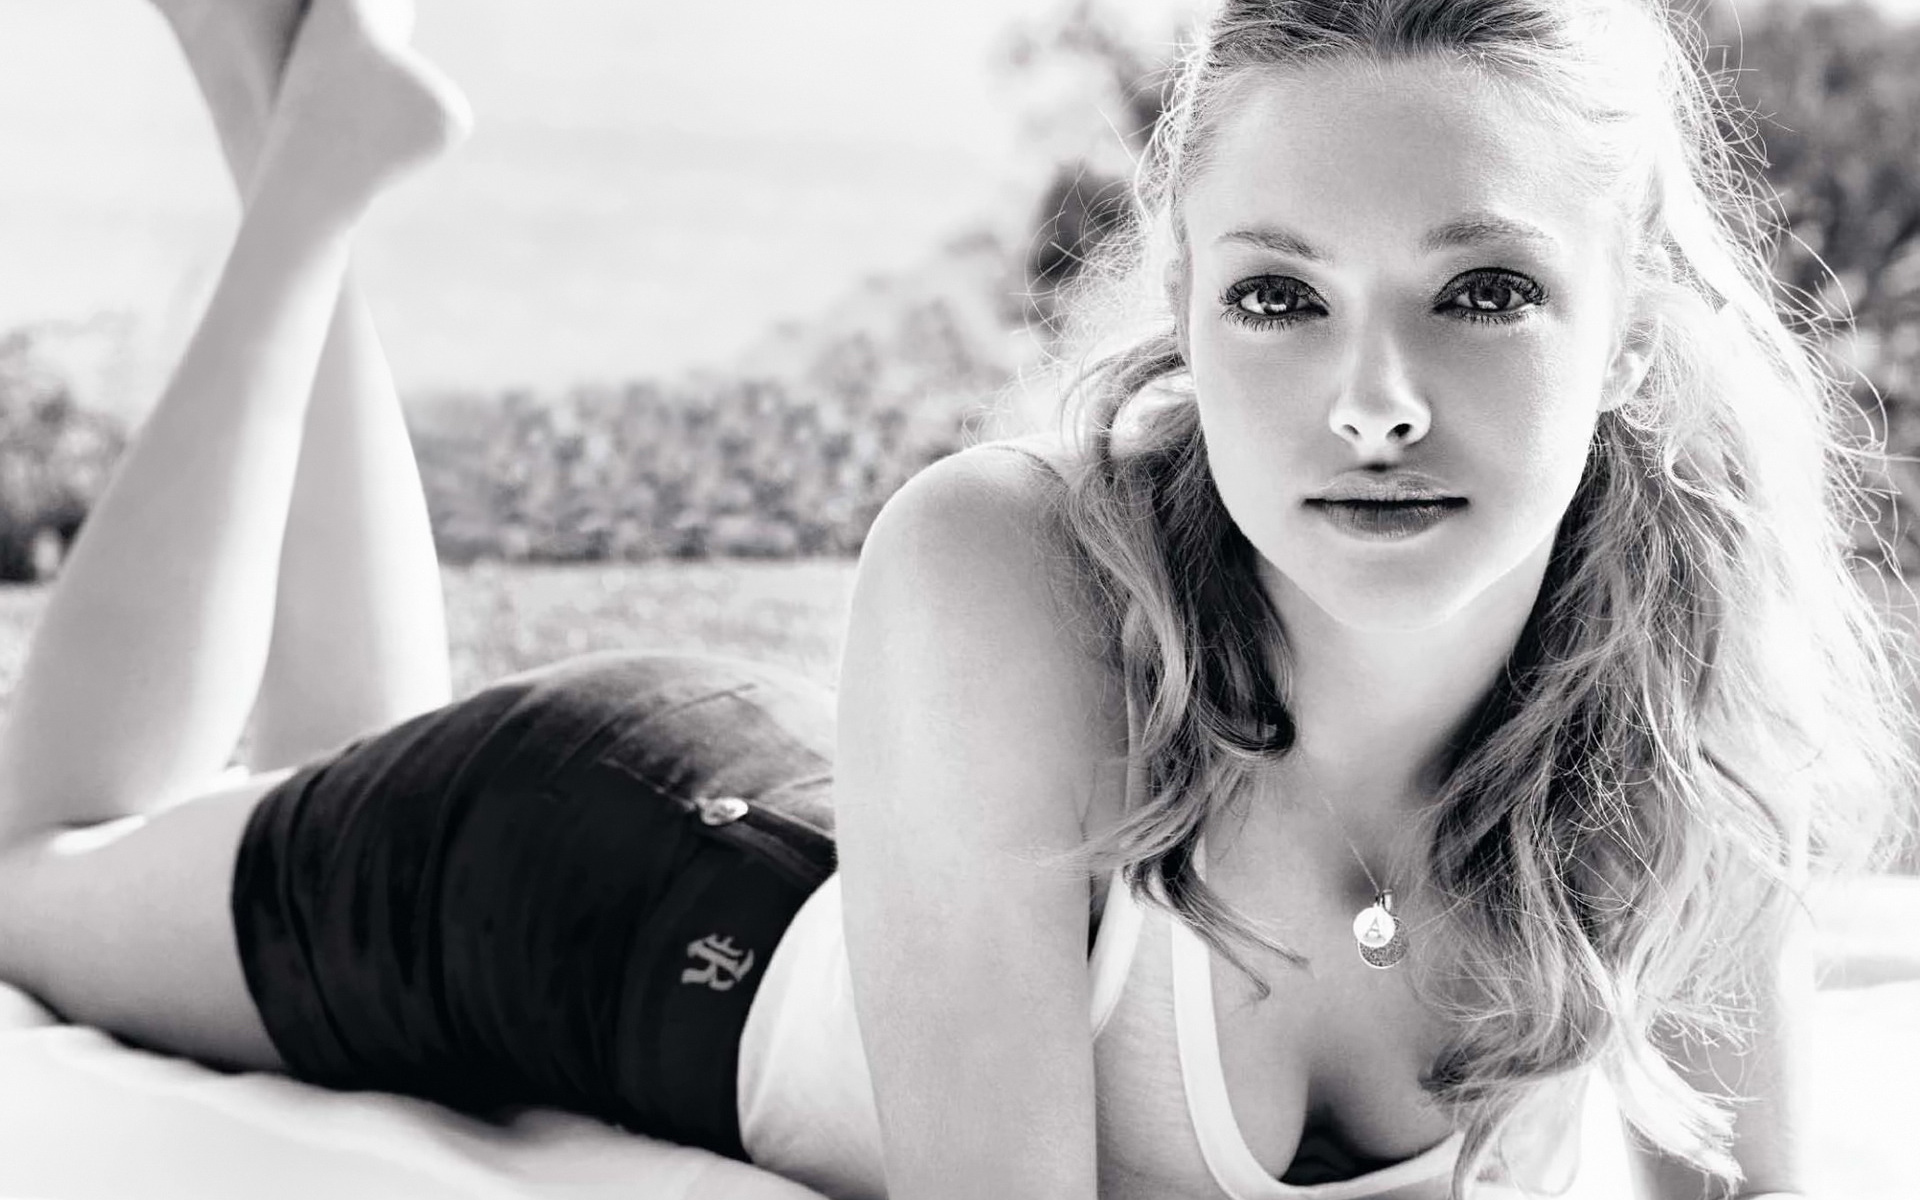 amanda-seyfried-10-HD_wallpapers.jpg Amanda Seyfried Wallpaper Hd 1920x1200